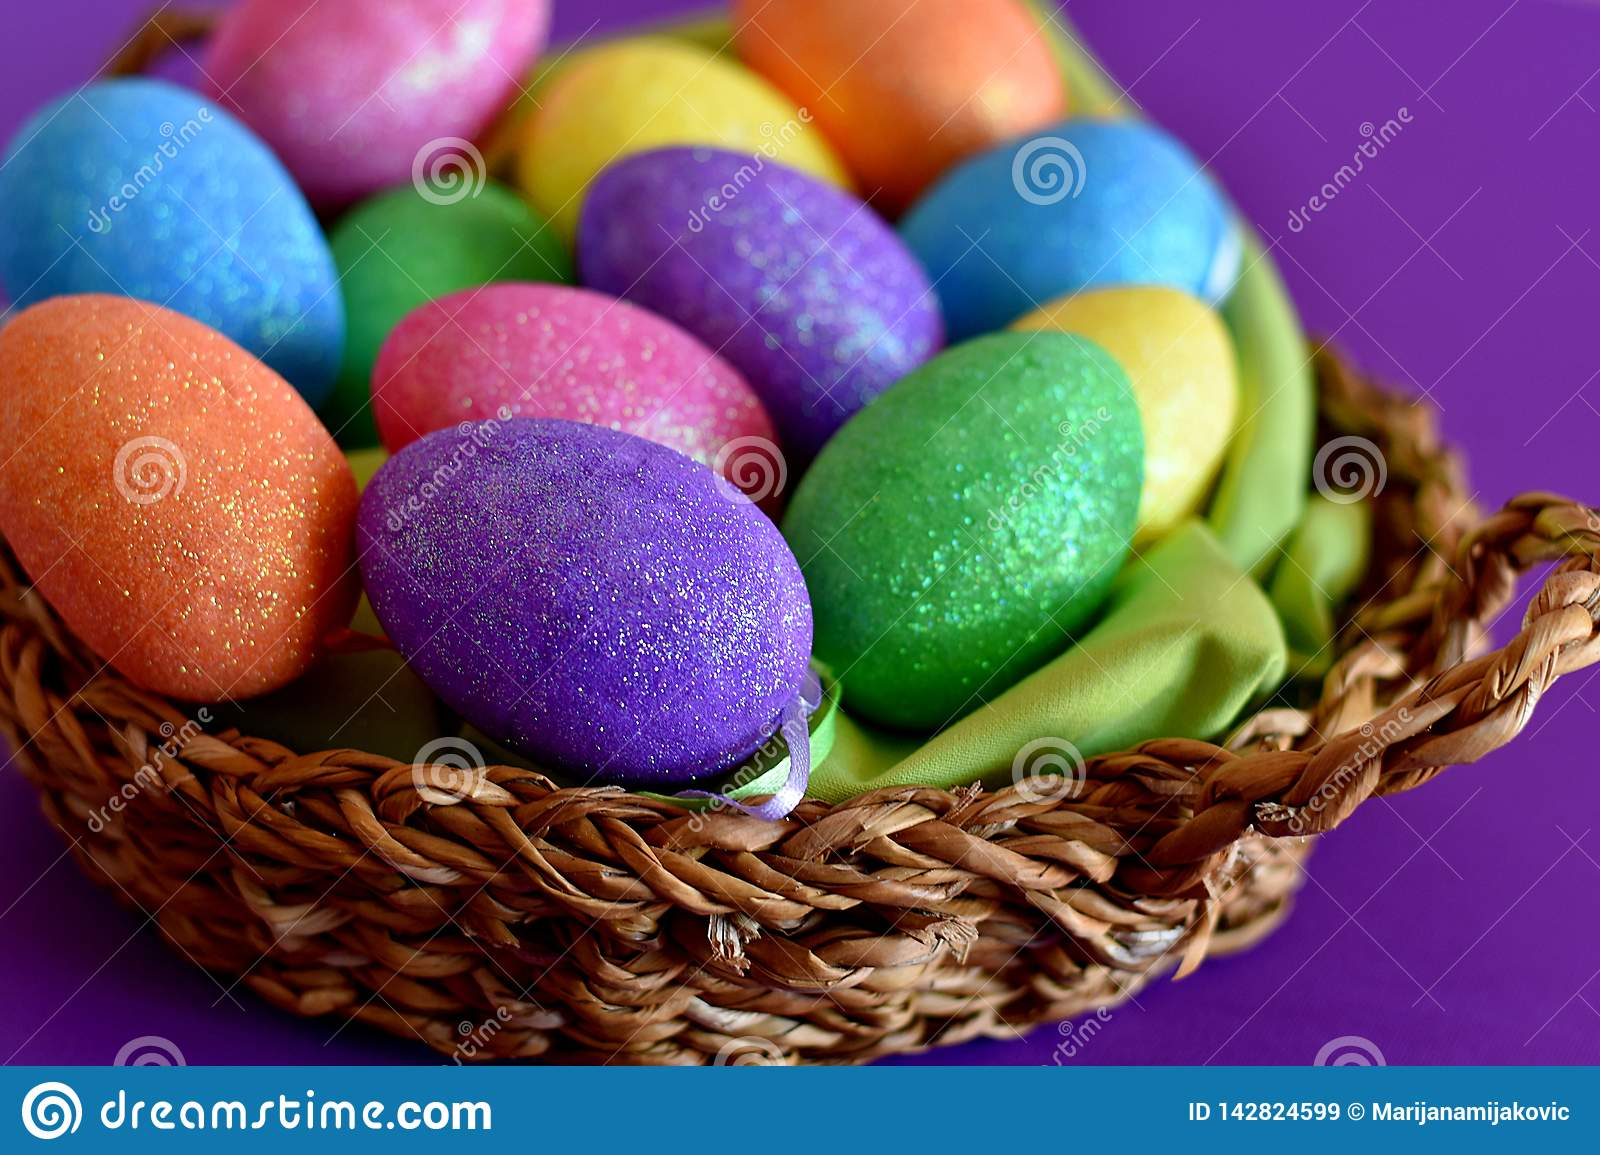 Sparkling glittering colored candy Easter eggs in a wicker basket